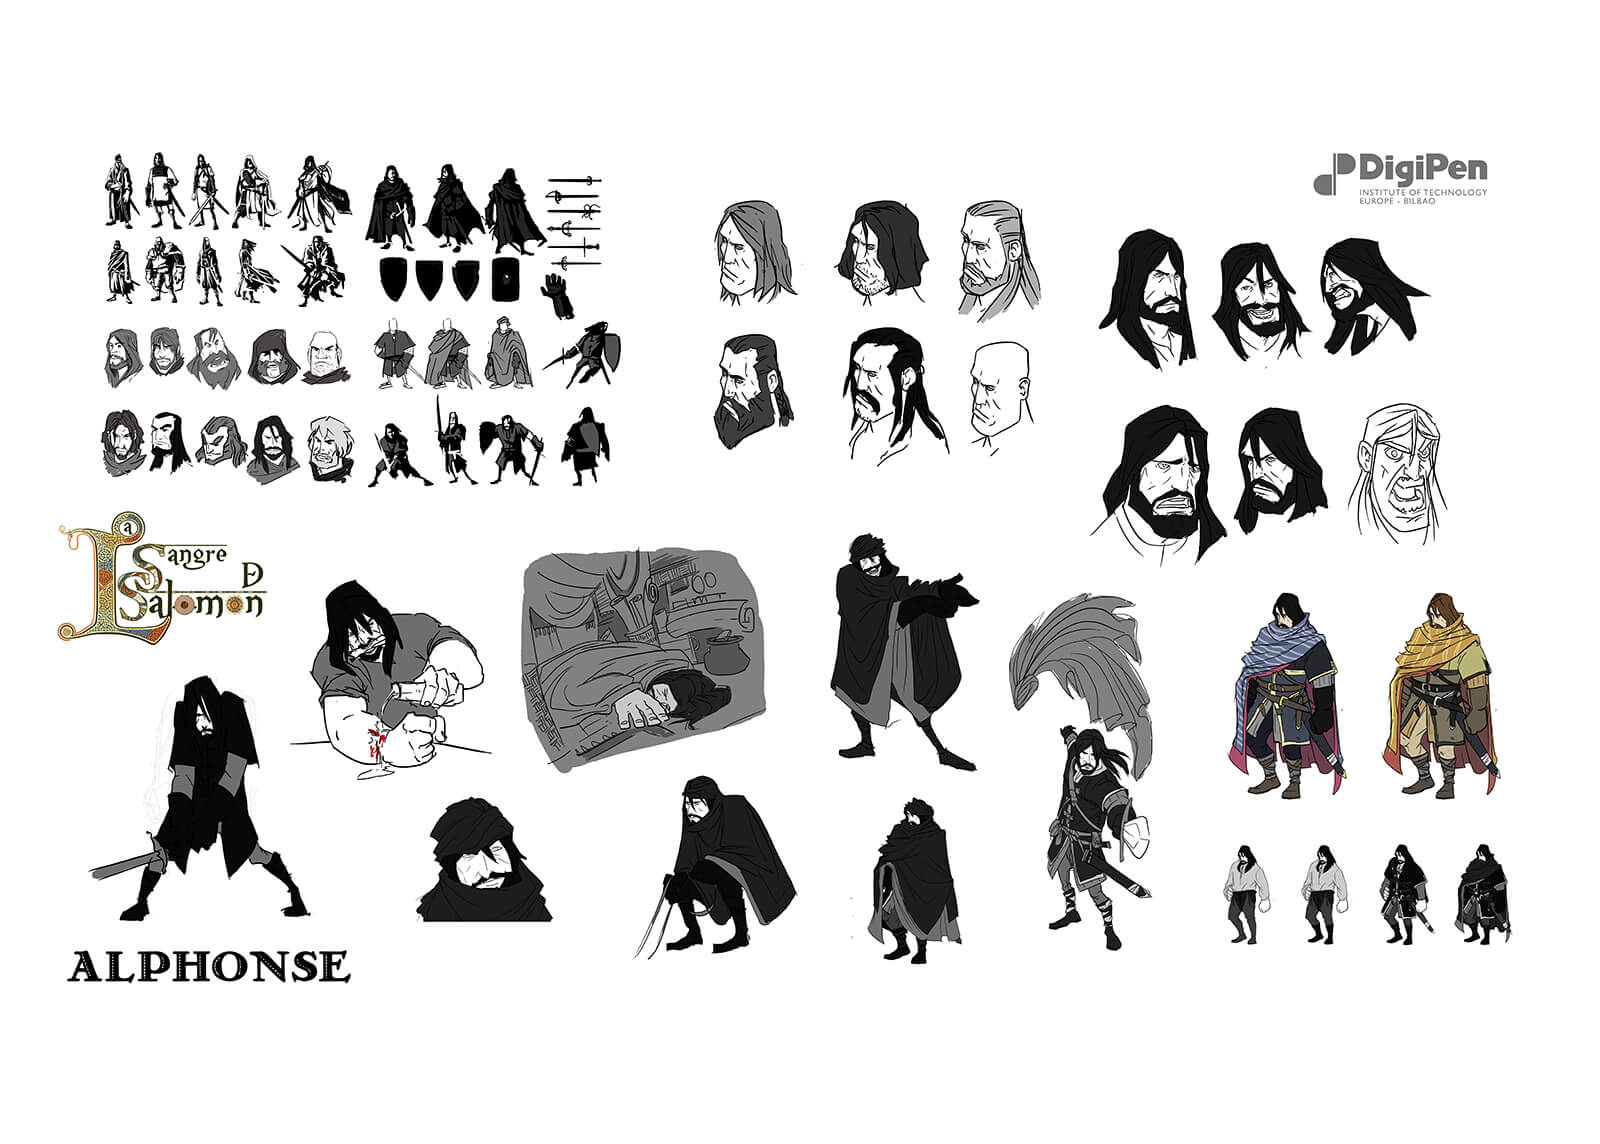 Concept drawings of Alphonse from La Sangre de Salomon